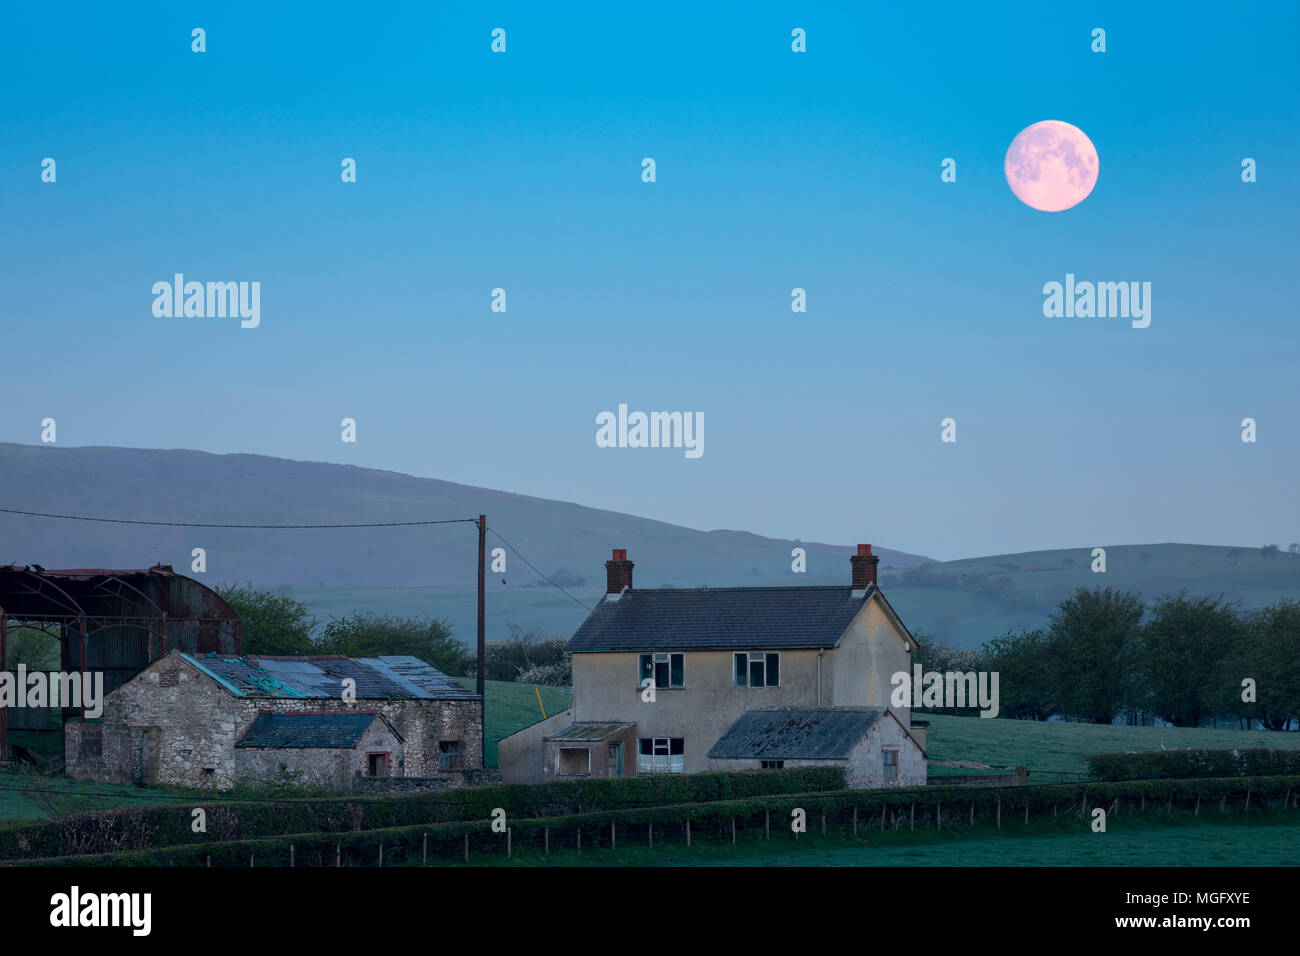 A full moon descending over the Clwydian Range or Clwydian Hills and a rural farm near to the village of Rhes-y-Cae early morning, Flintshire, Wales, UK - Stock Image